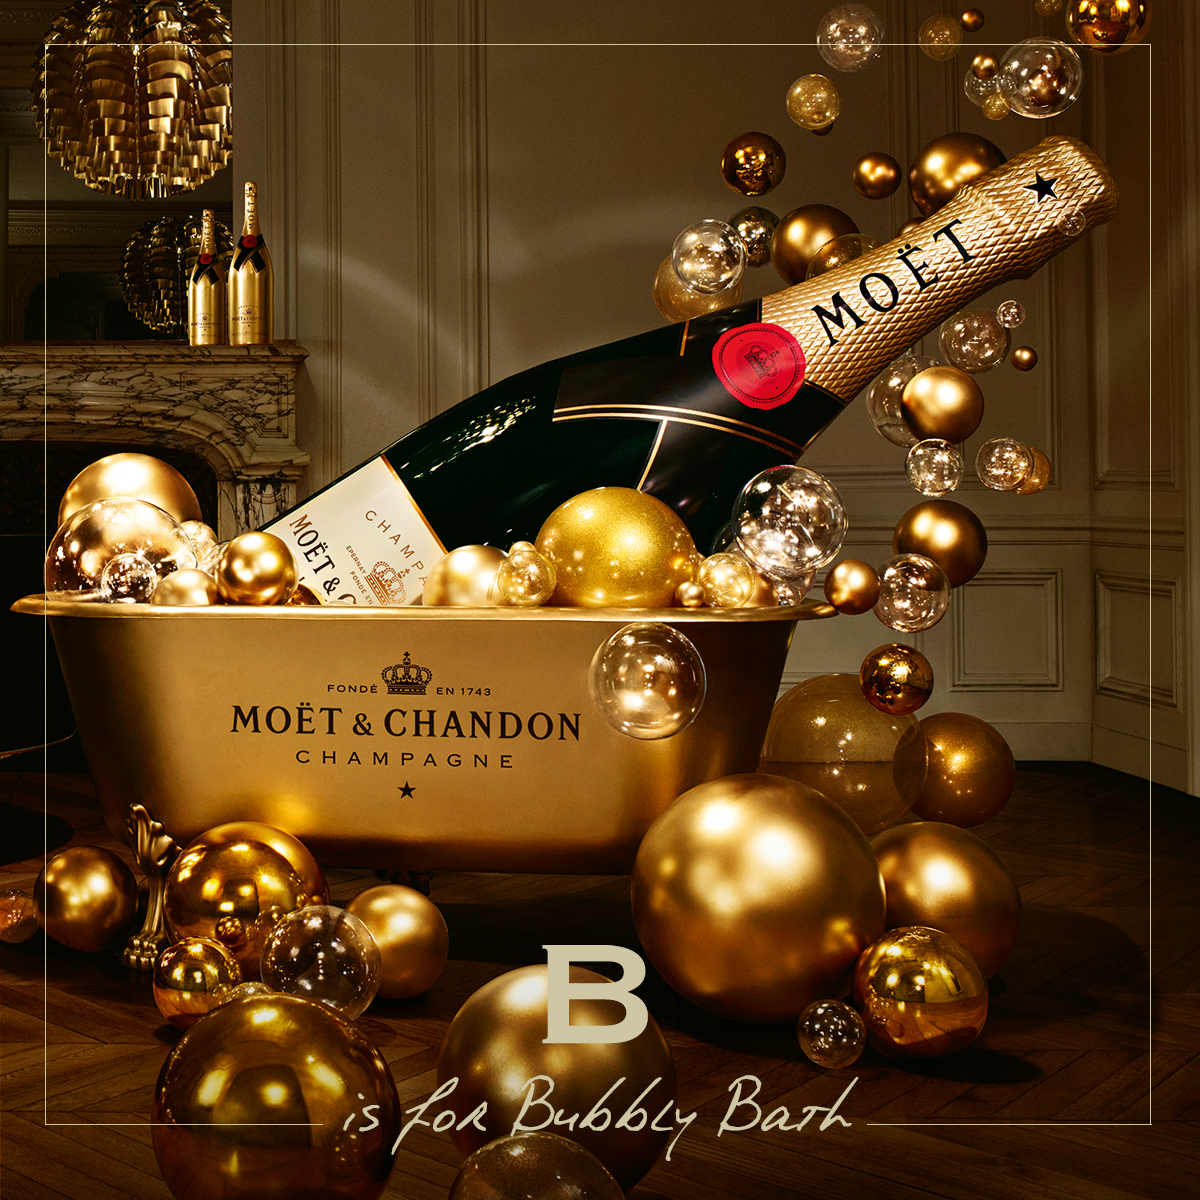 B for Bubbly Bath #MoetMoment